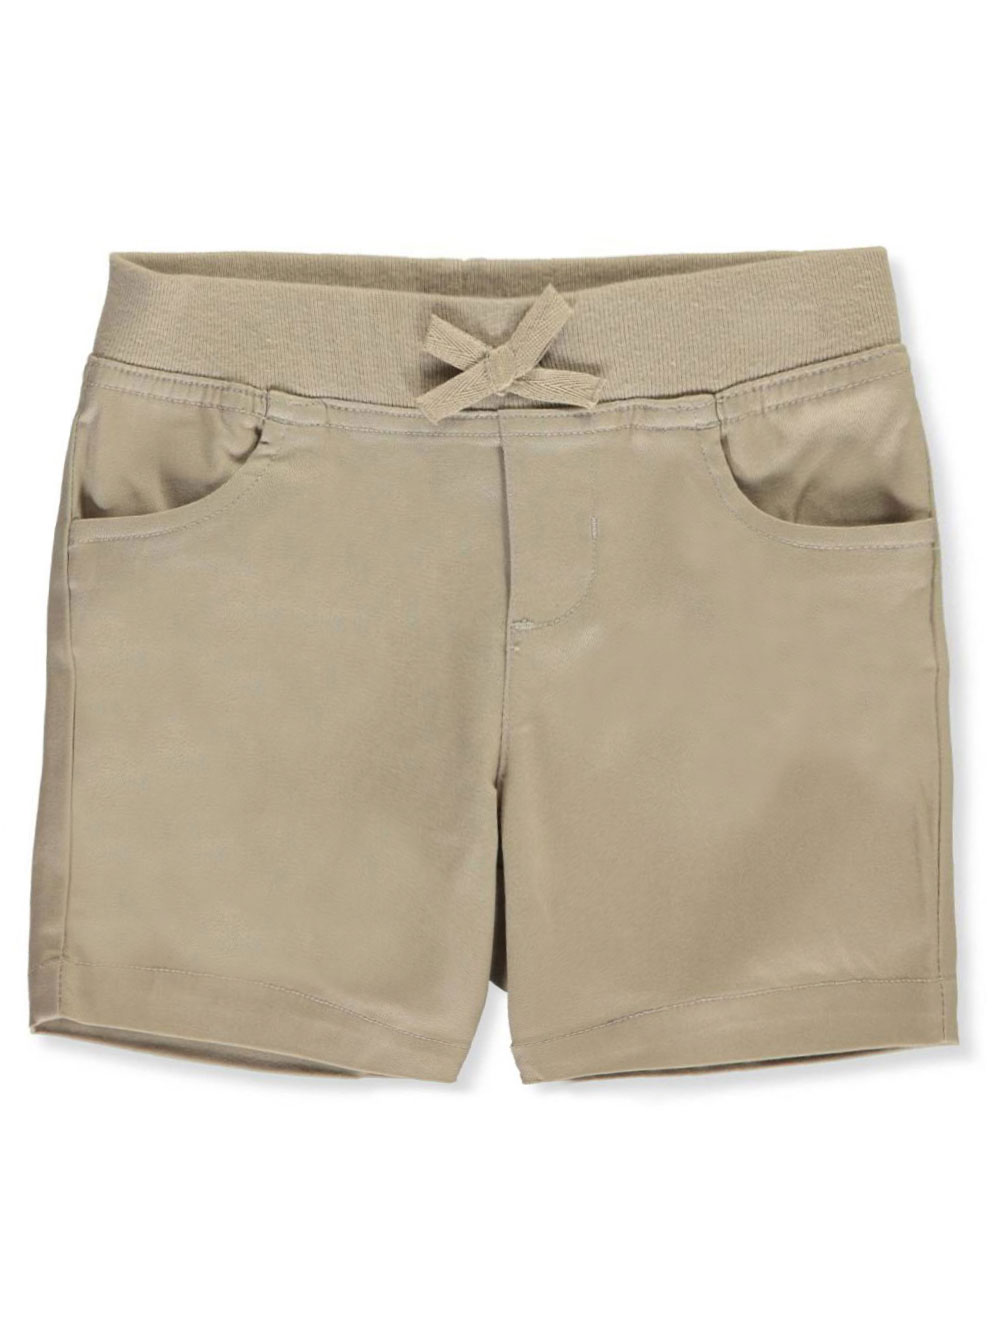 Wrinkle No More Pull-On Tie-Front Shorts